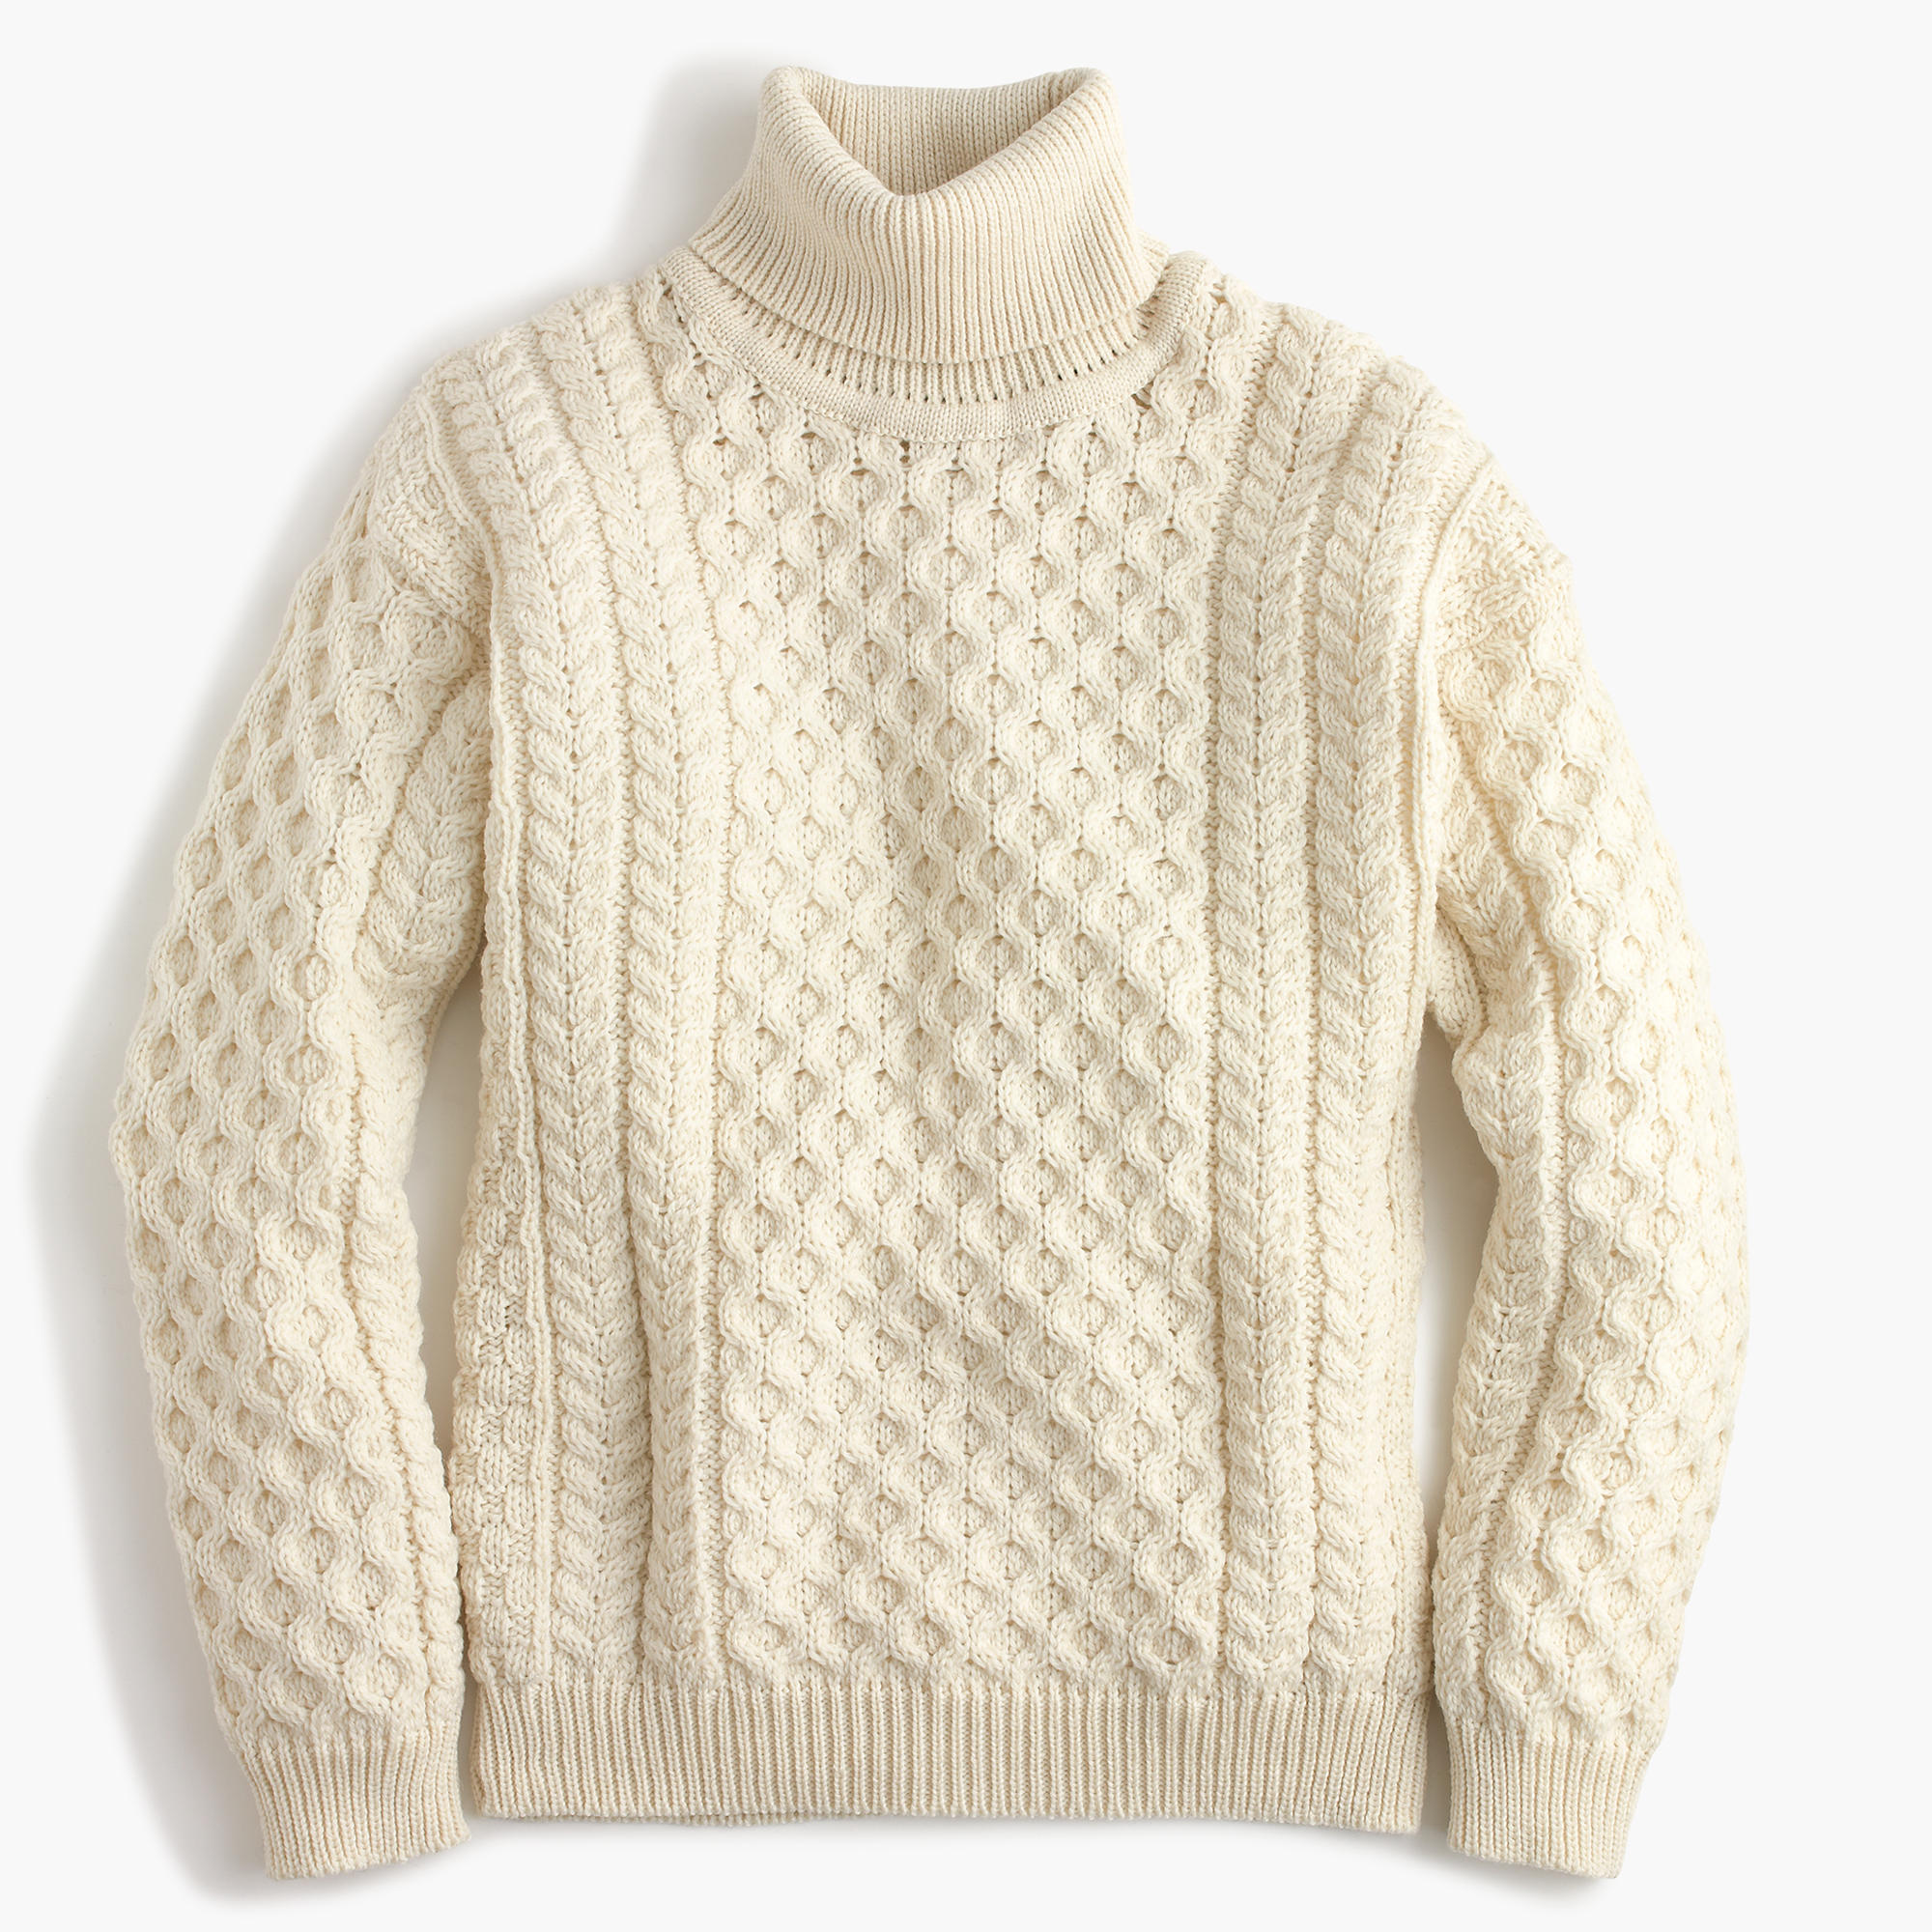 Aran crafts wool cable turtleneck sweater j crew for Aran crafts fisherman sweater